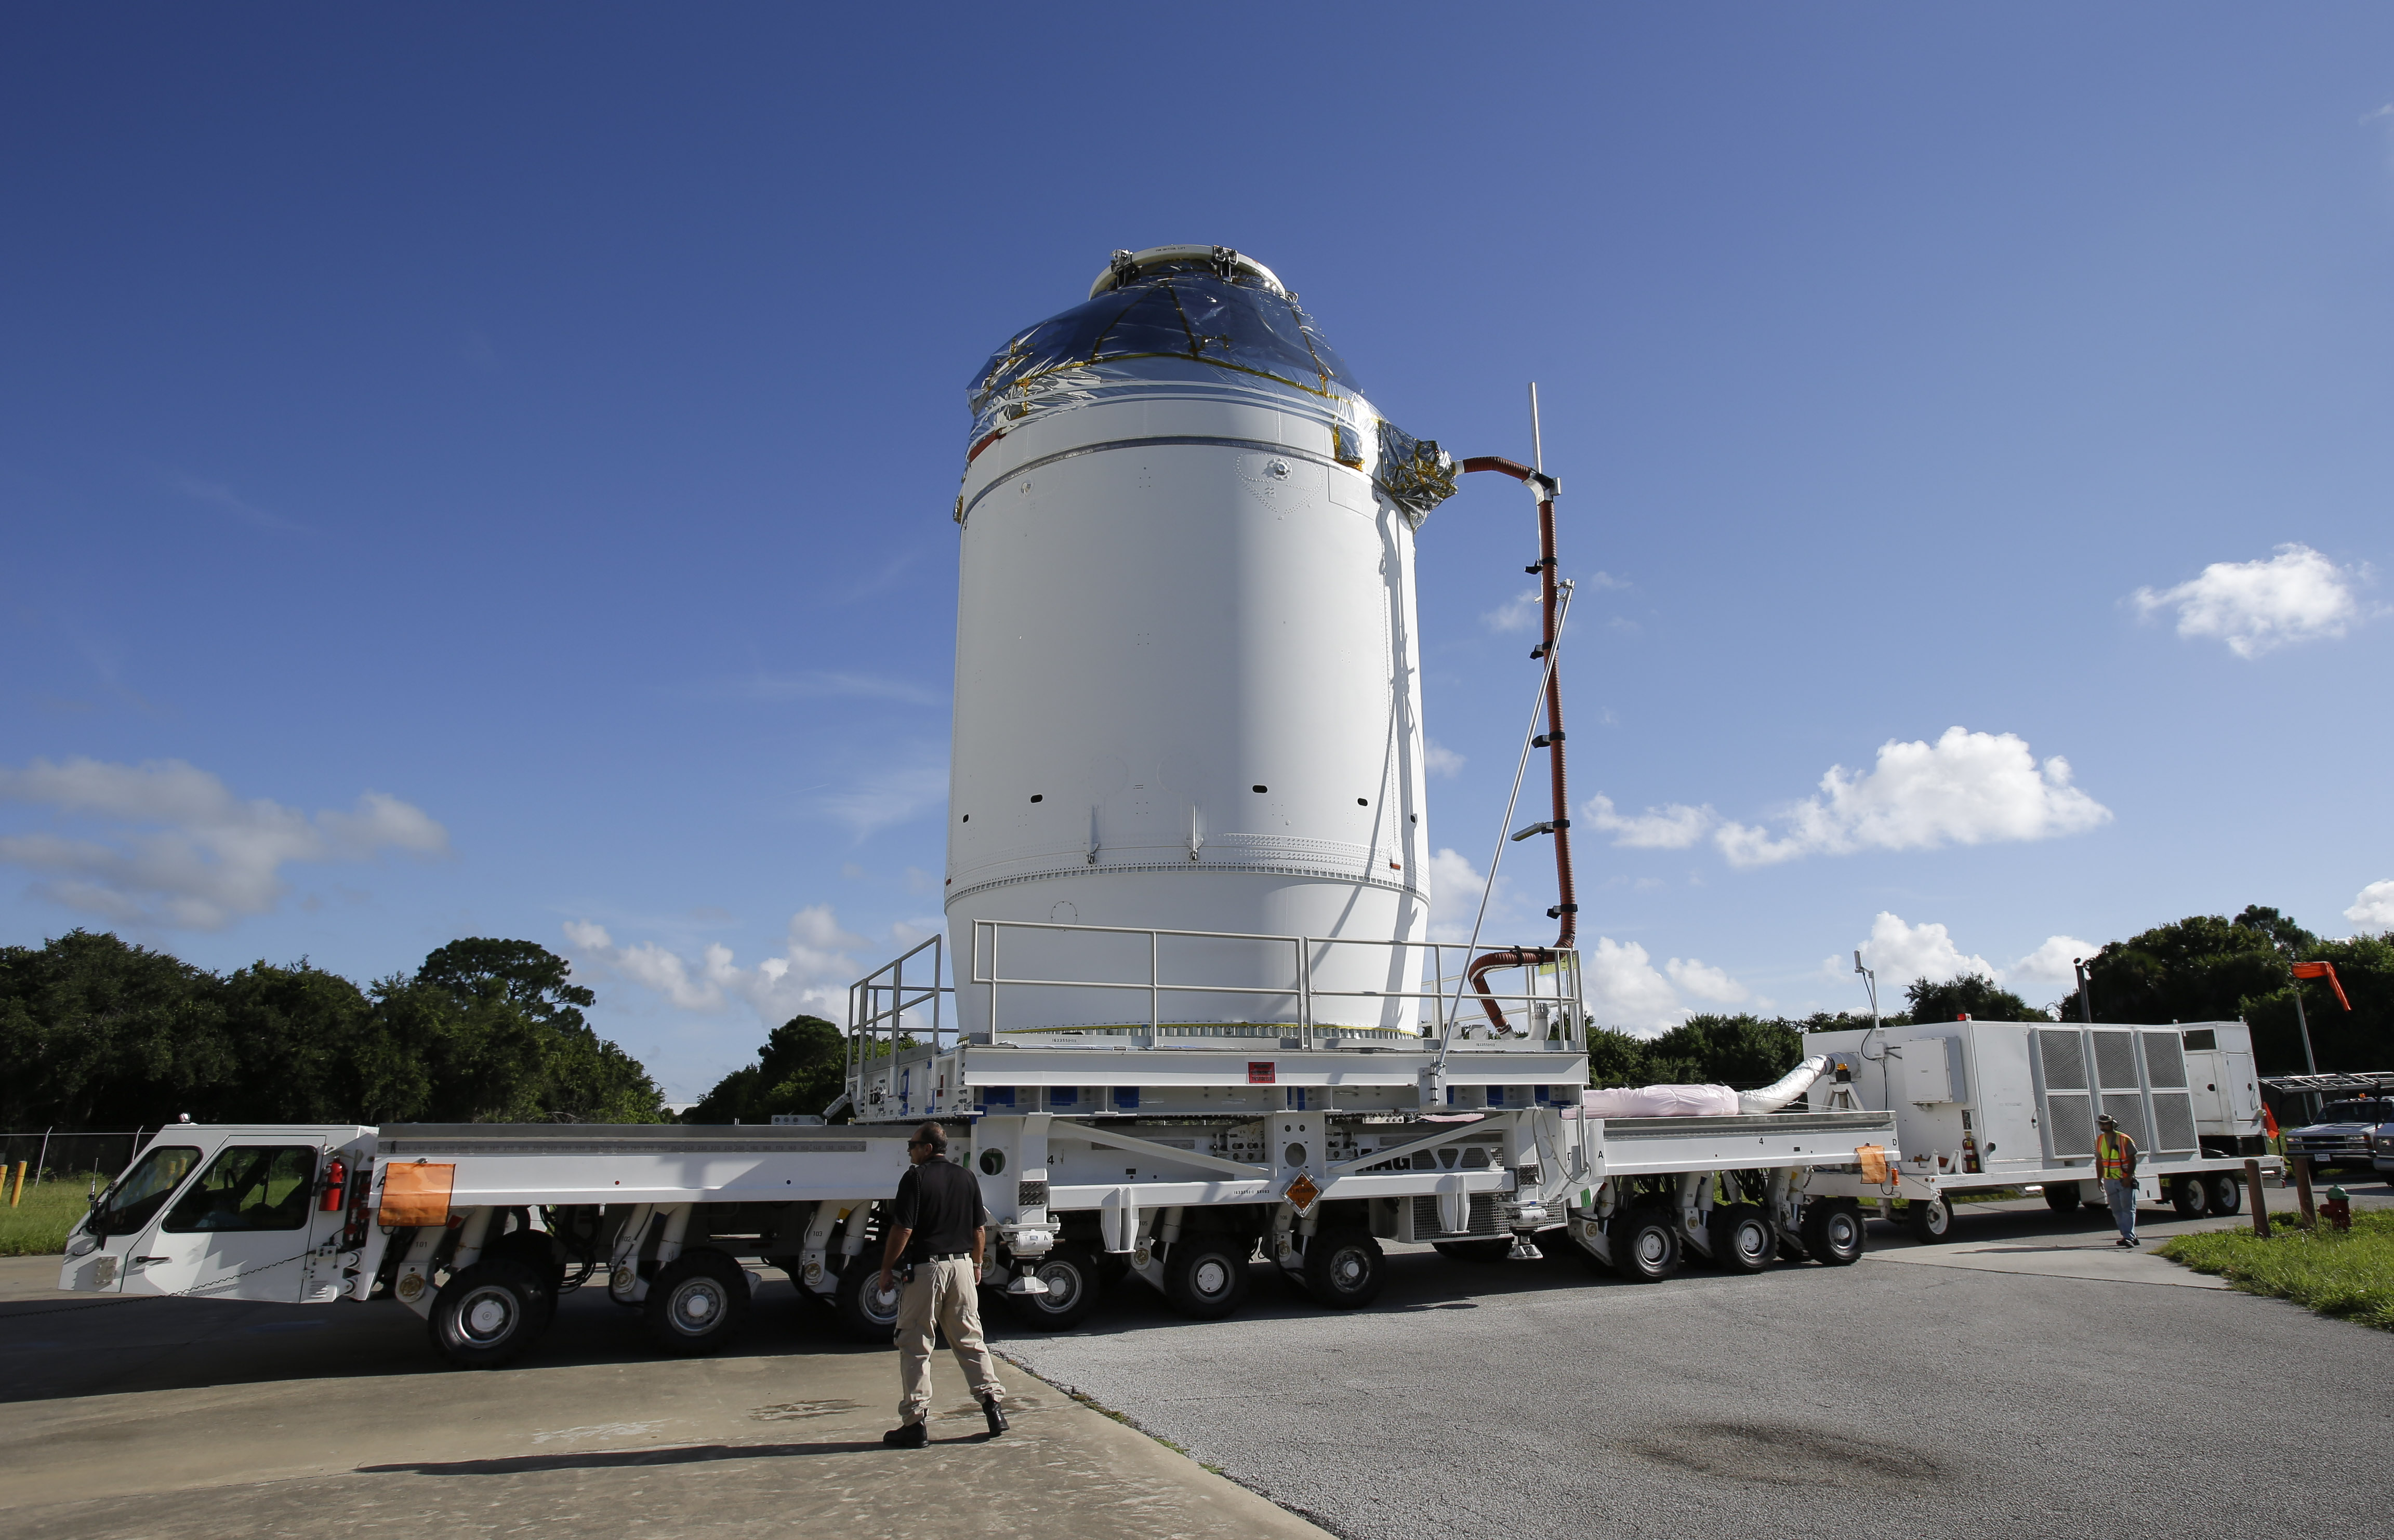 NASA's Orion spacecraft, preparing for its first flight, moves toward the Payload Hazardous Servicing Facility at the Kennedy Space Center on Thursday at Cape Canaveral, Florida. Orion is scheduled for a test flight in early December.   AP